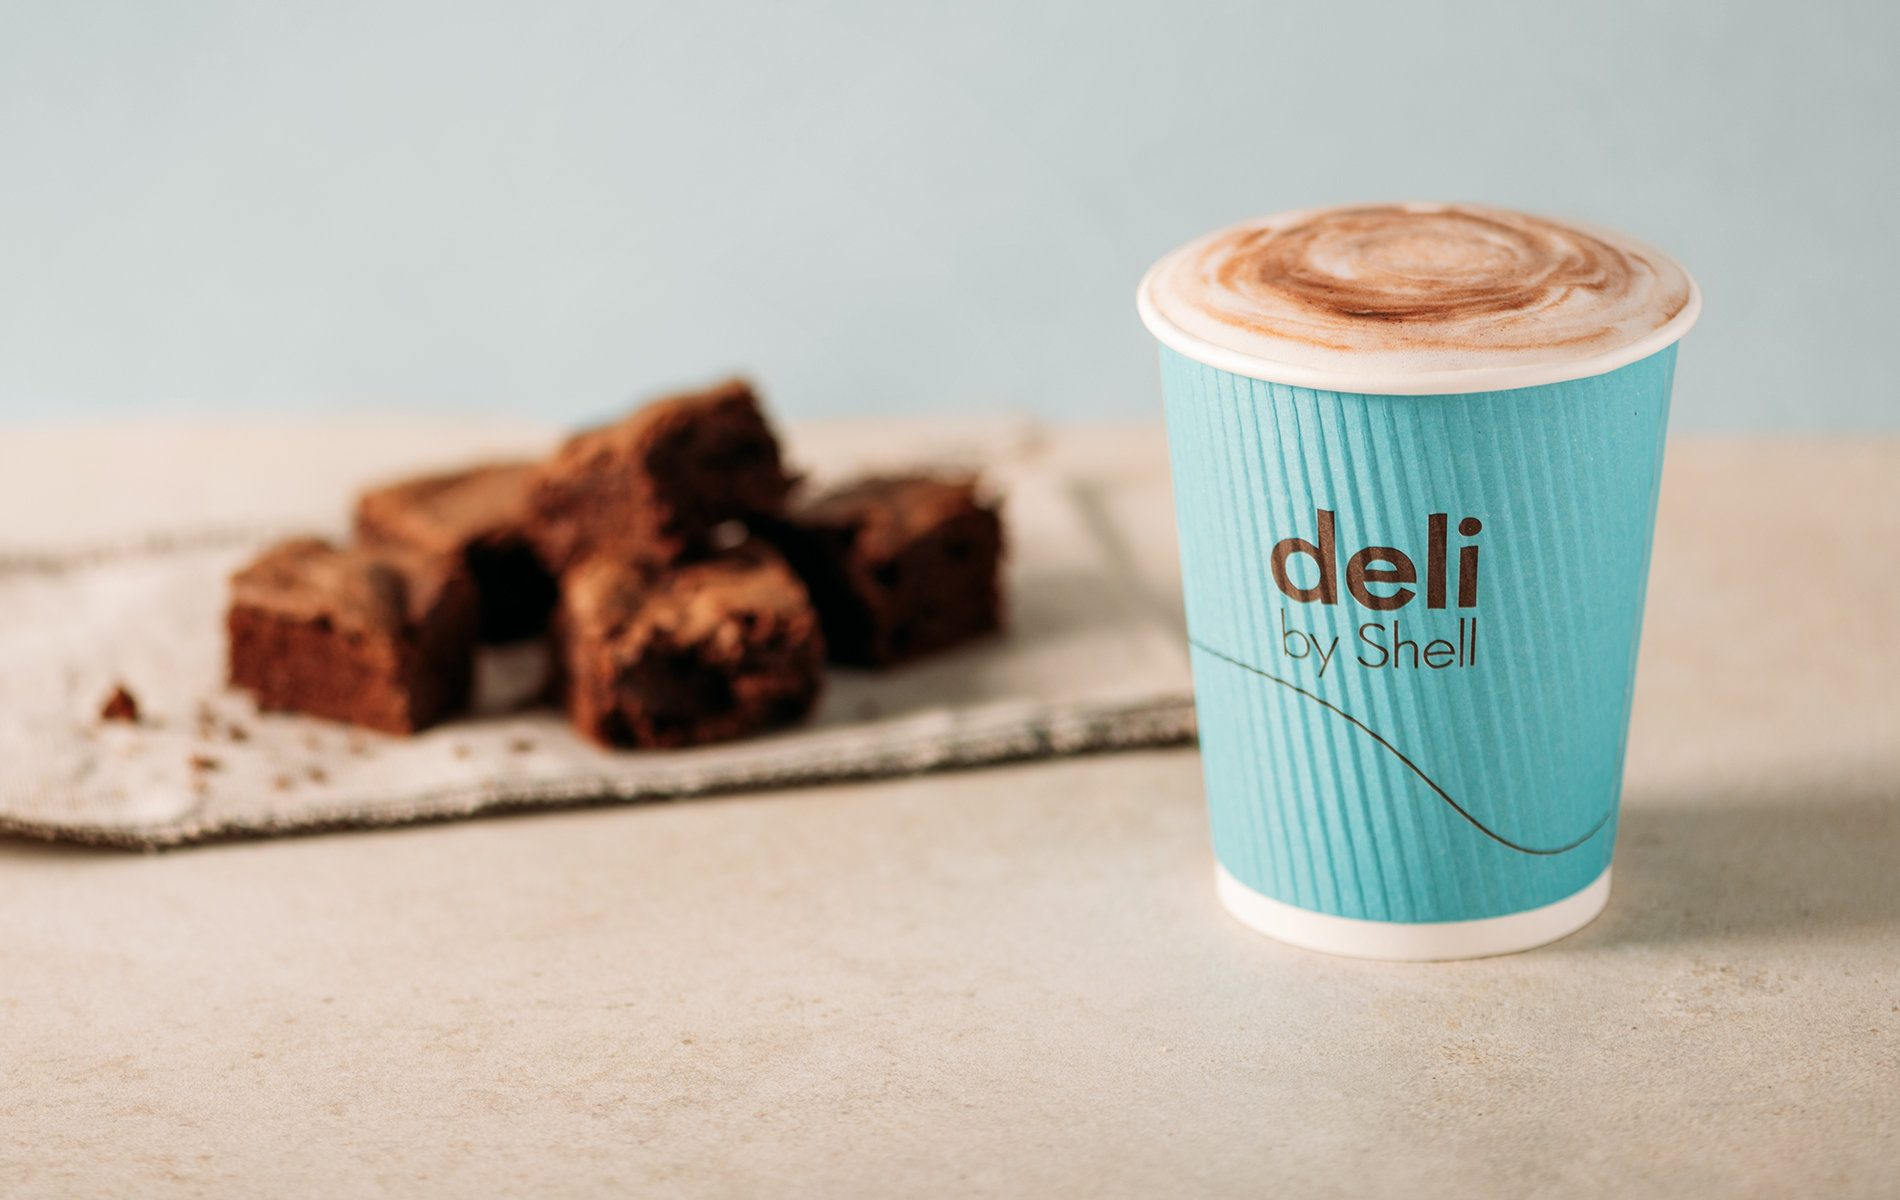 Deli to shell coffee